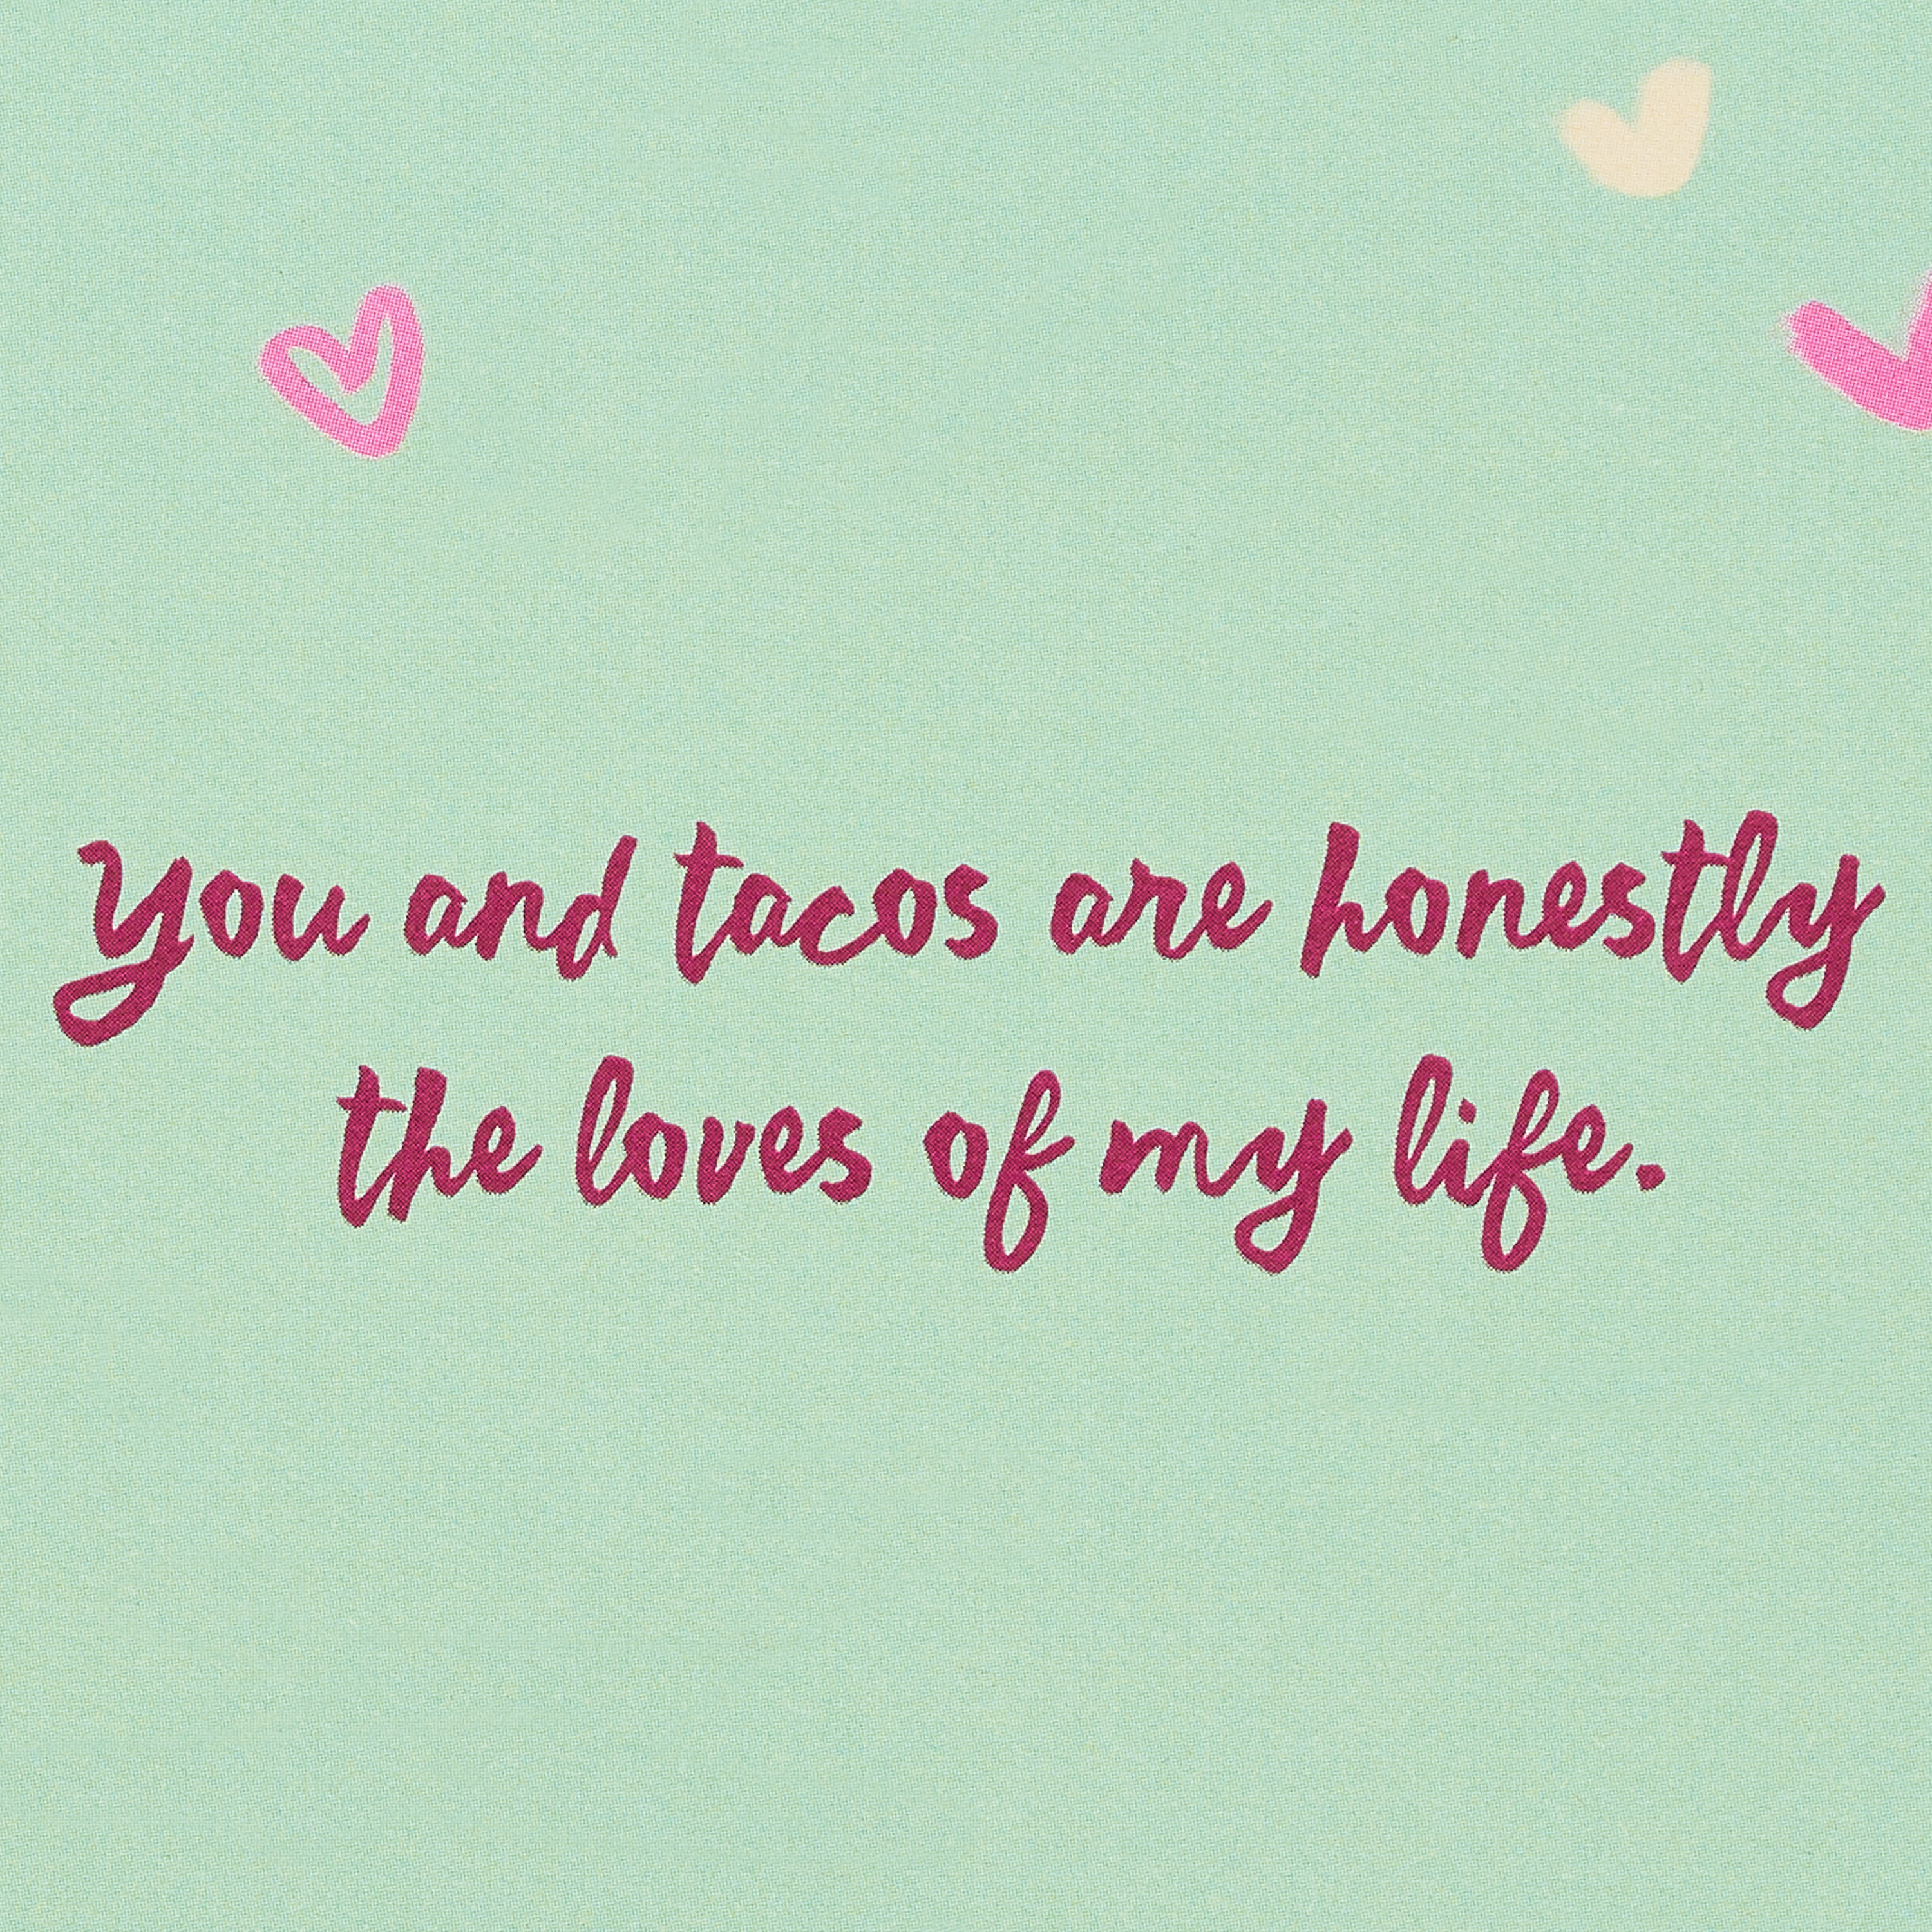 Romantic Tacos Valentine's Day Card image